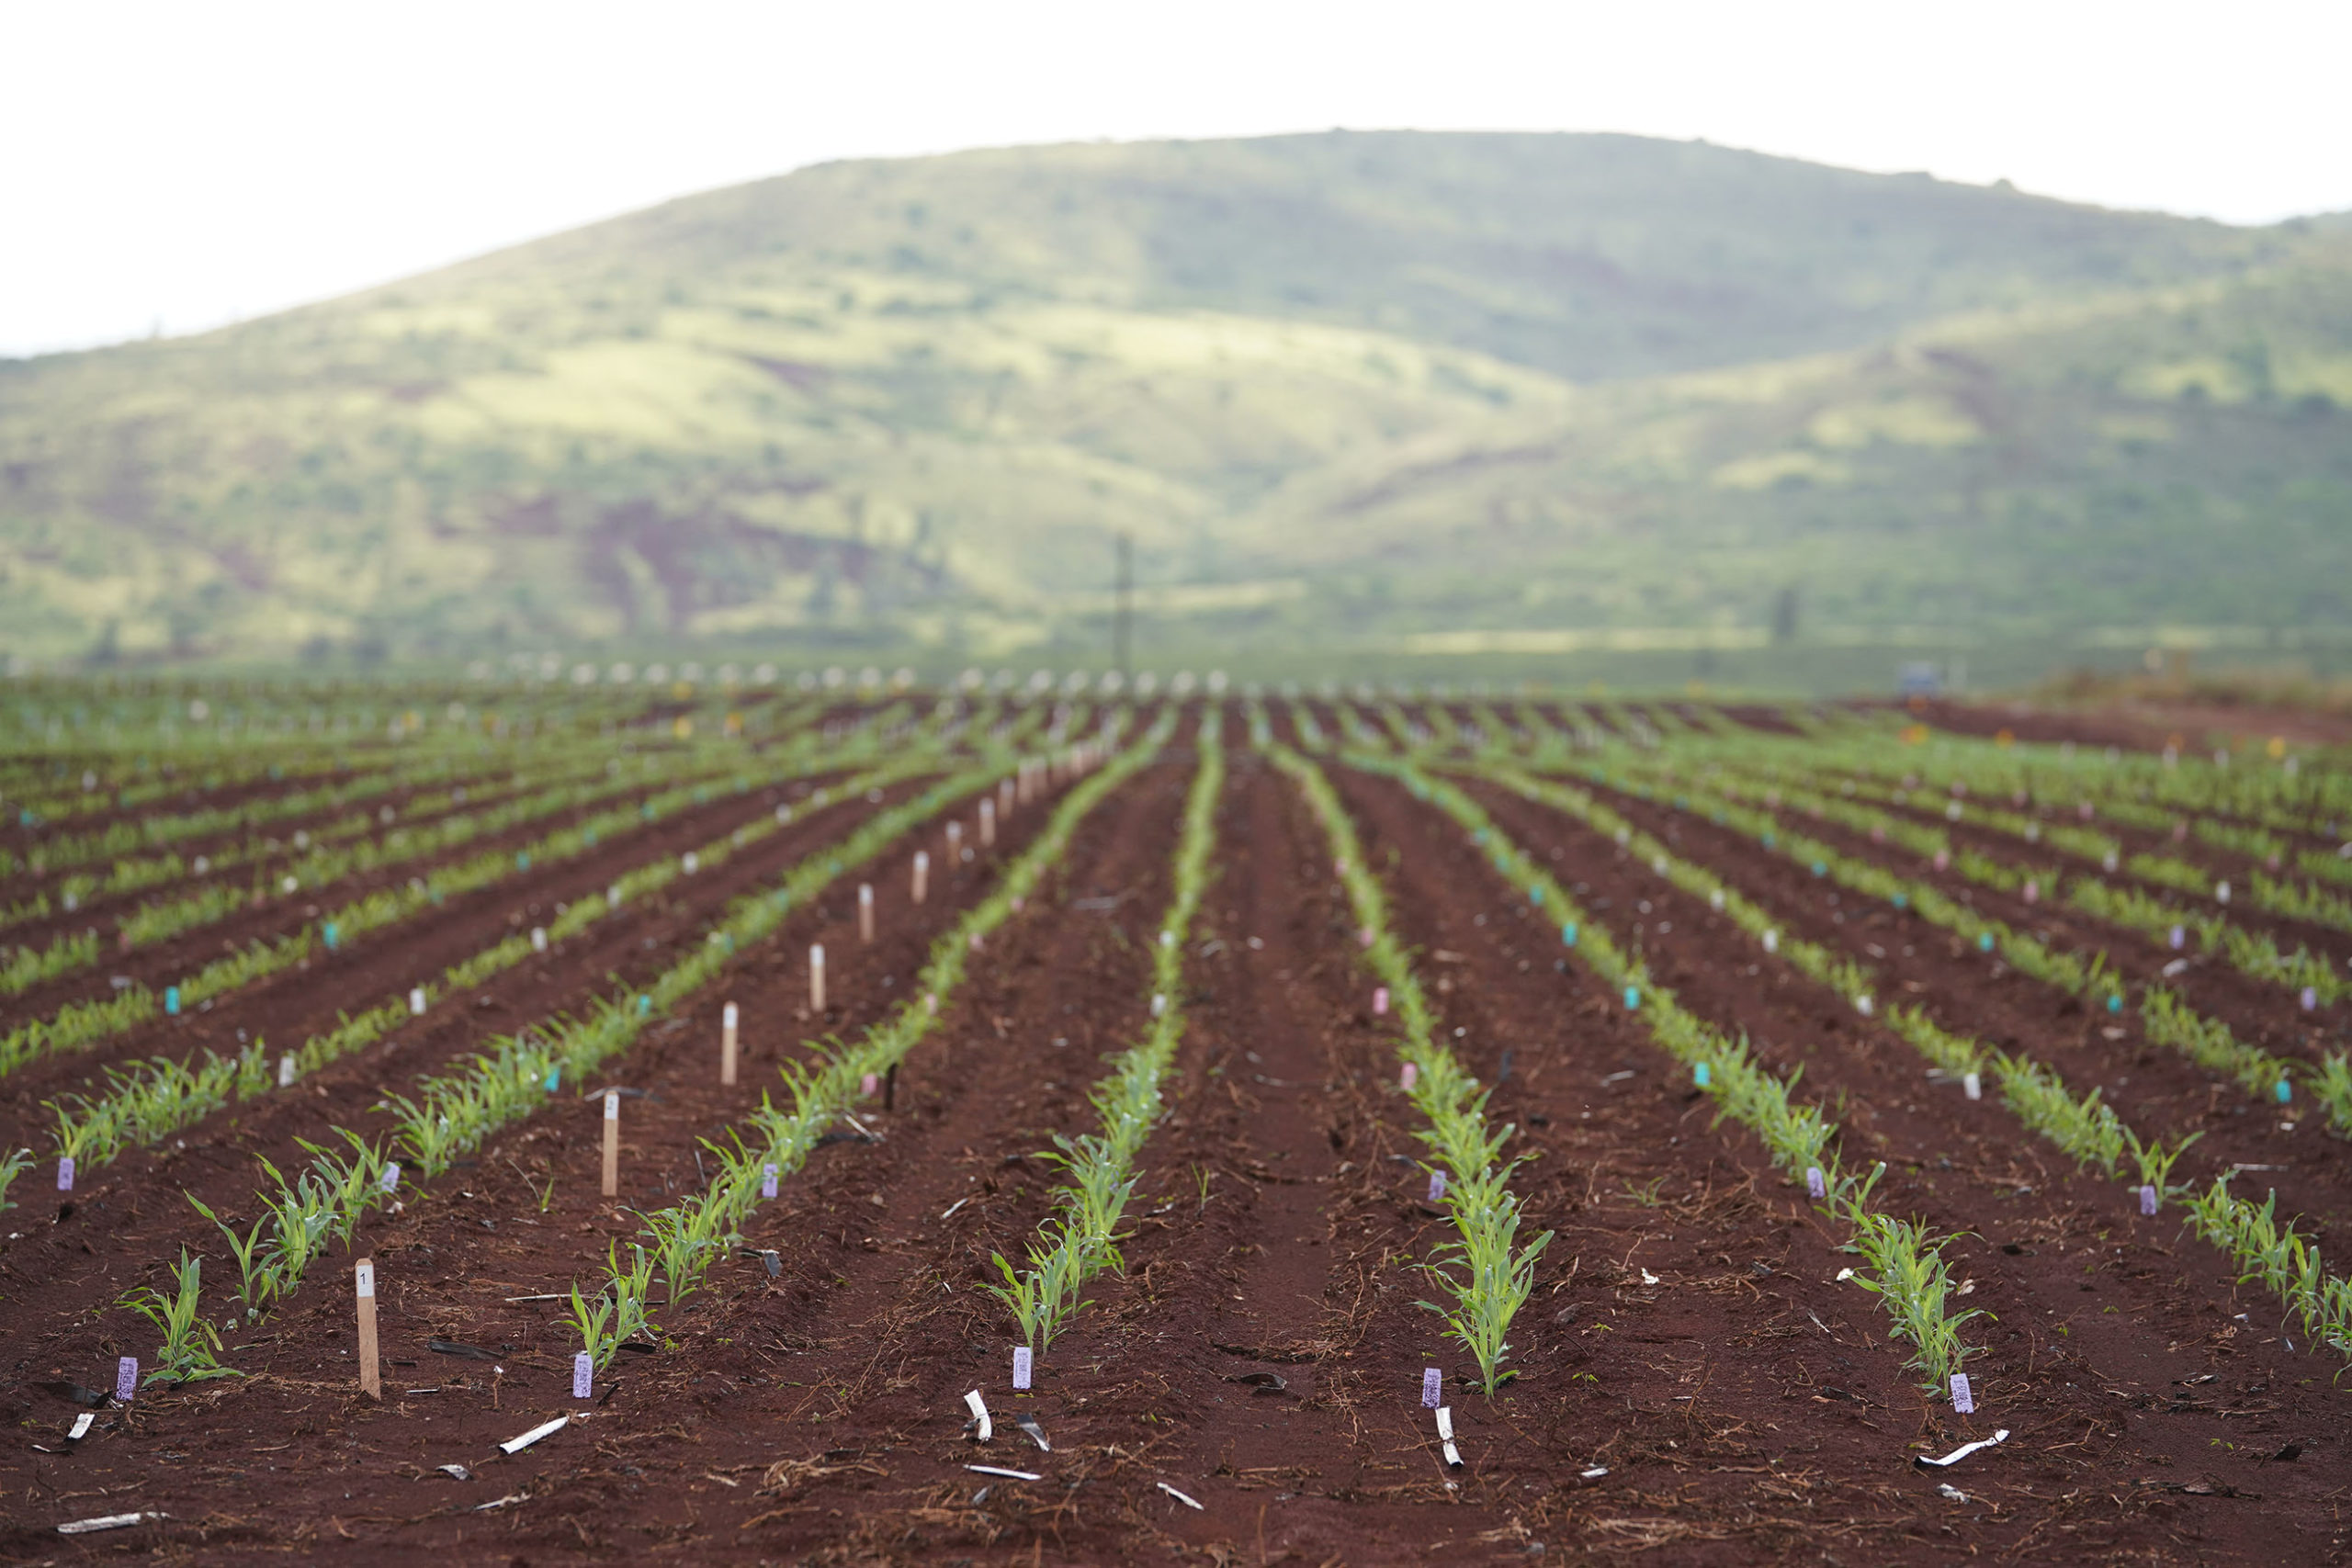 Bayer Crop Science located at 94-520 Kunia Road Kapolei. Rows of newly planted corn with Waianae Mountains in the background.